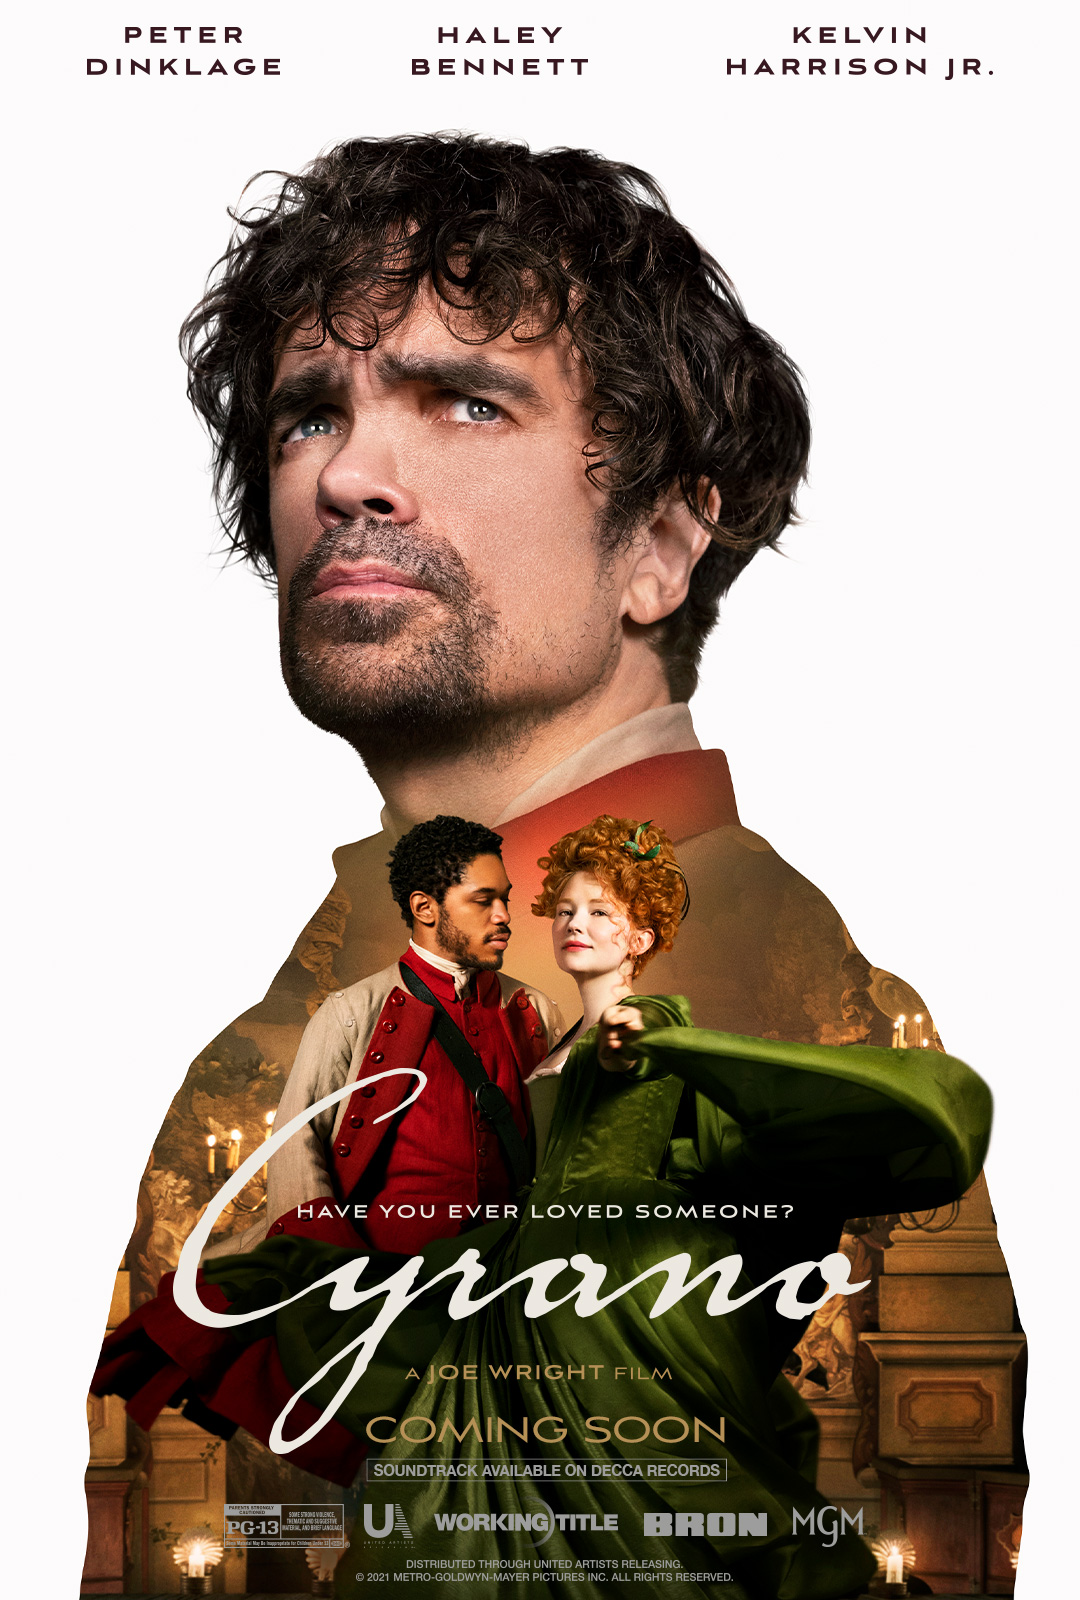 Official Poster for Joe Wright's 'CYRANO'